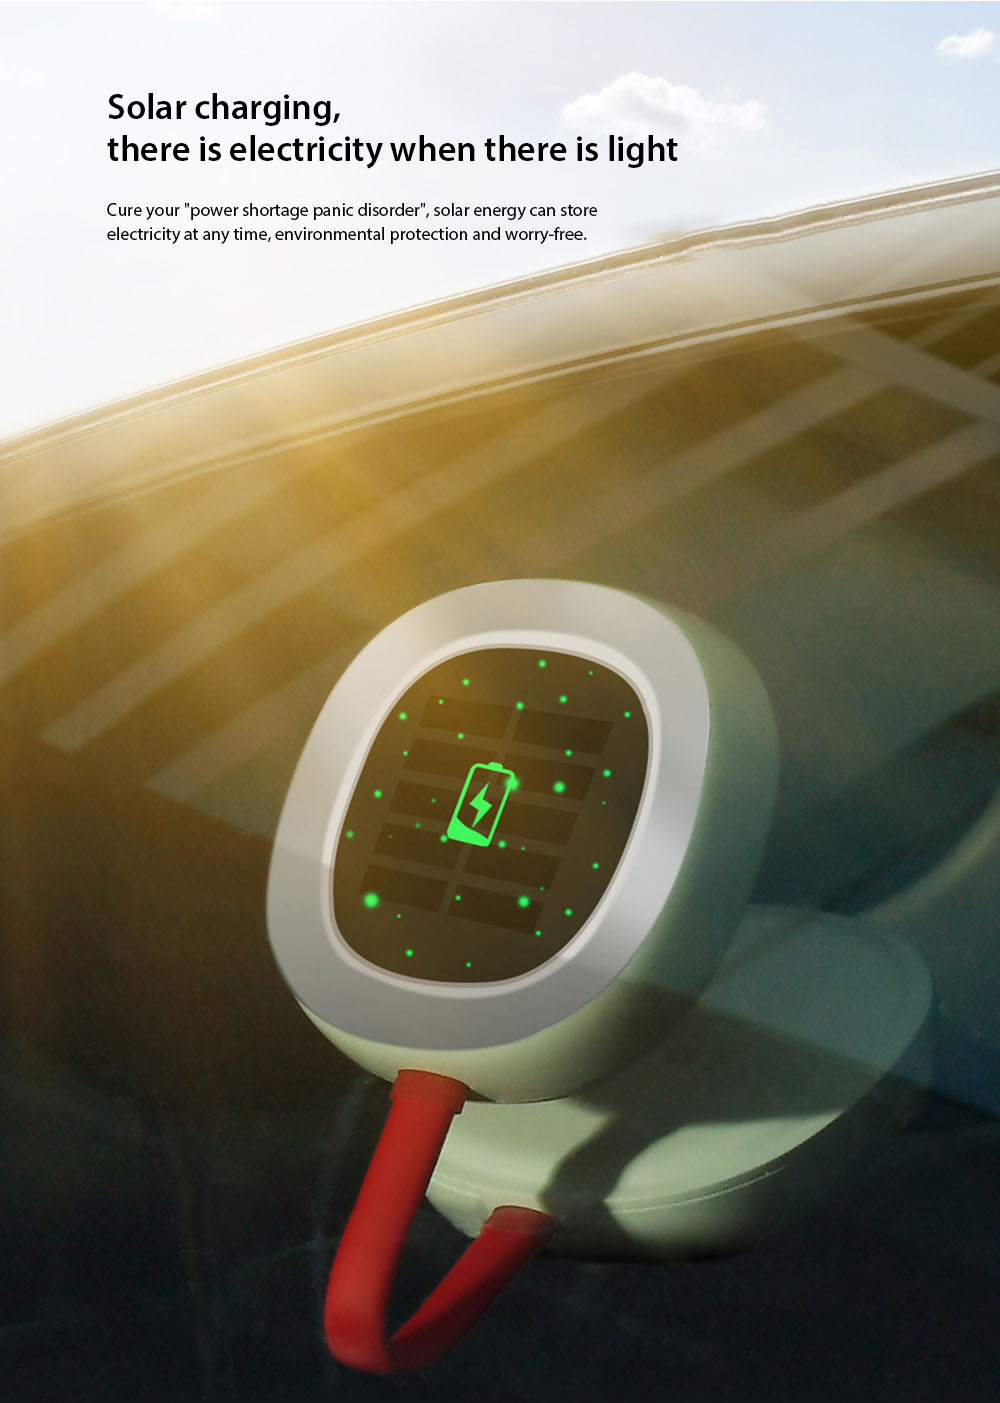 Baseus Solar USB Dual Charging Car Reading Light Solar charging, there is electricity when there is light